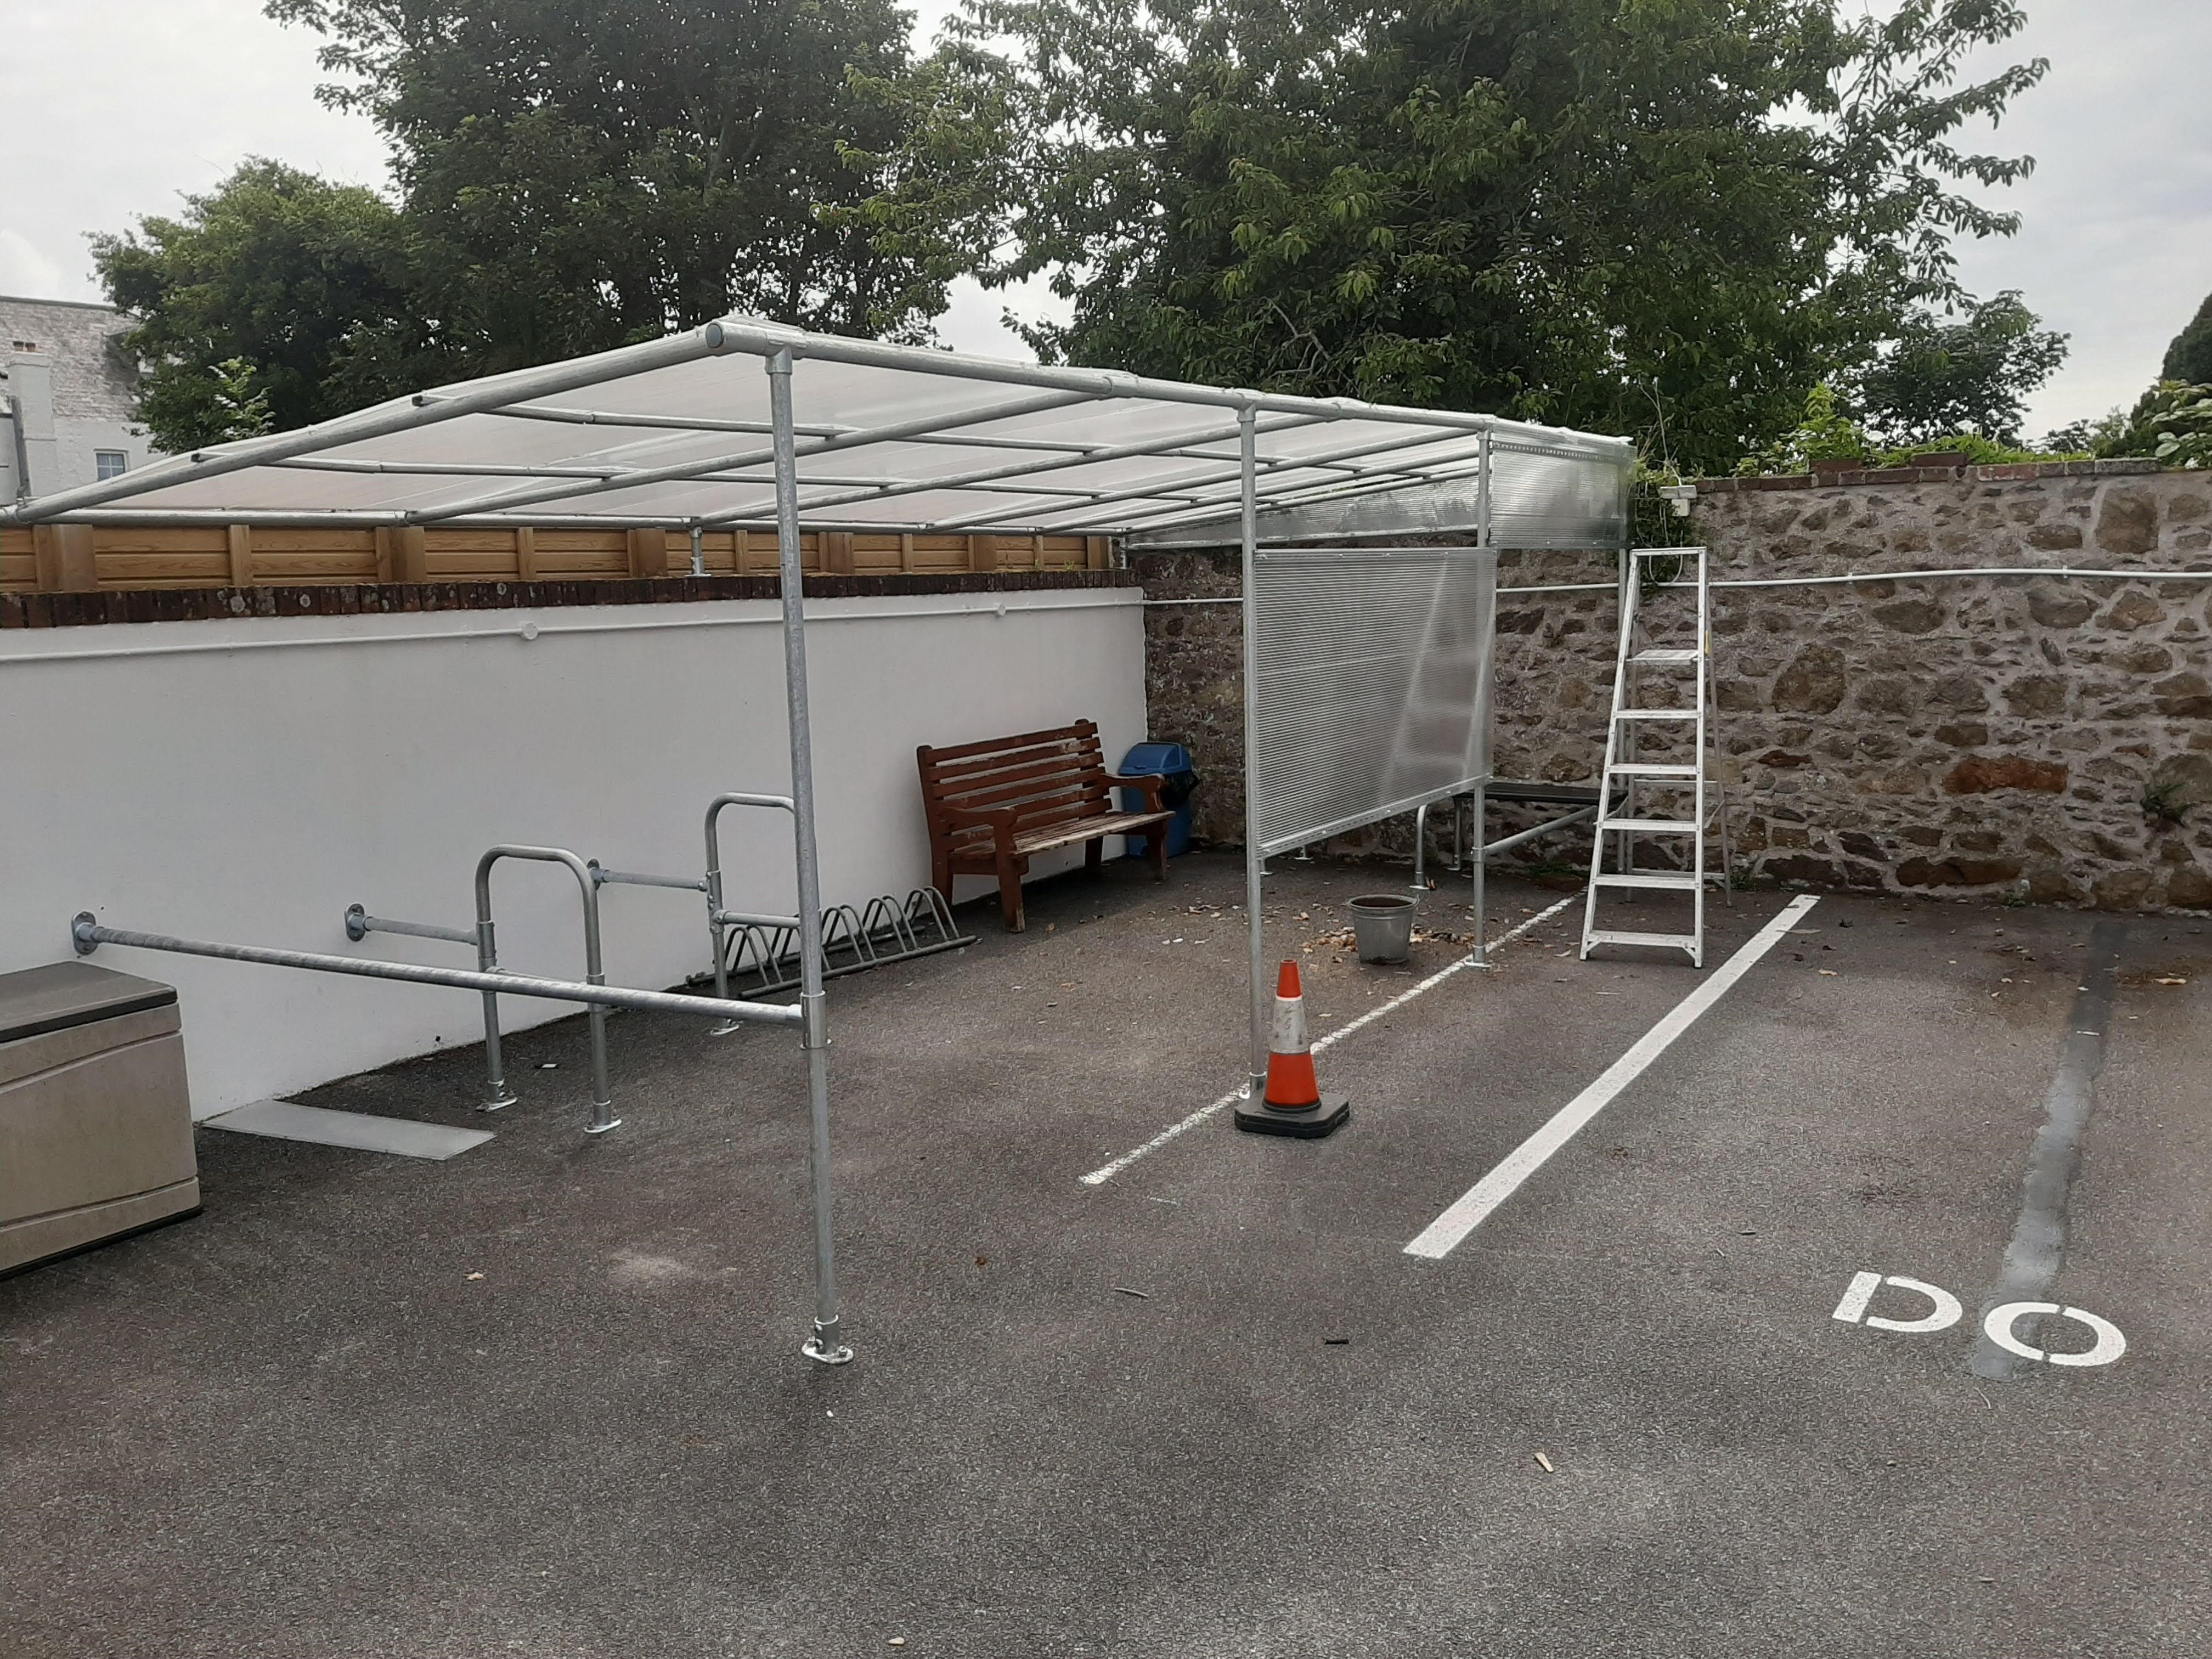 Interclamp shelter desined and installed by the Storage Centre